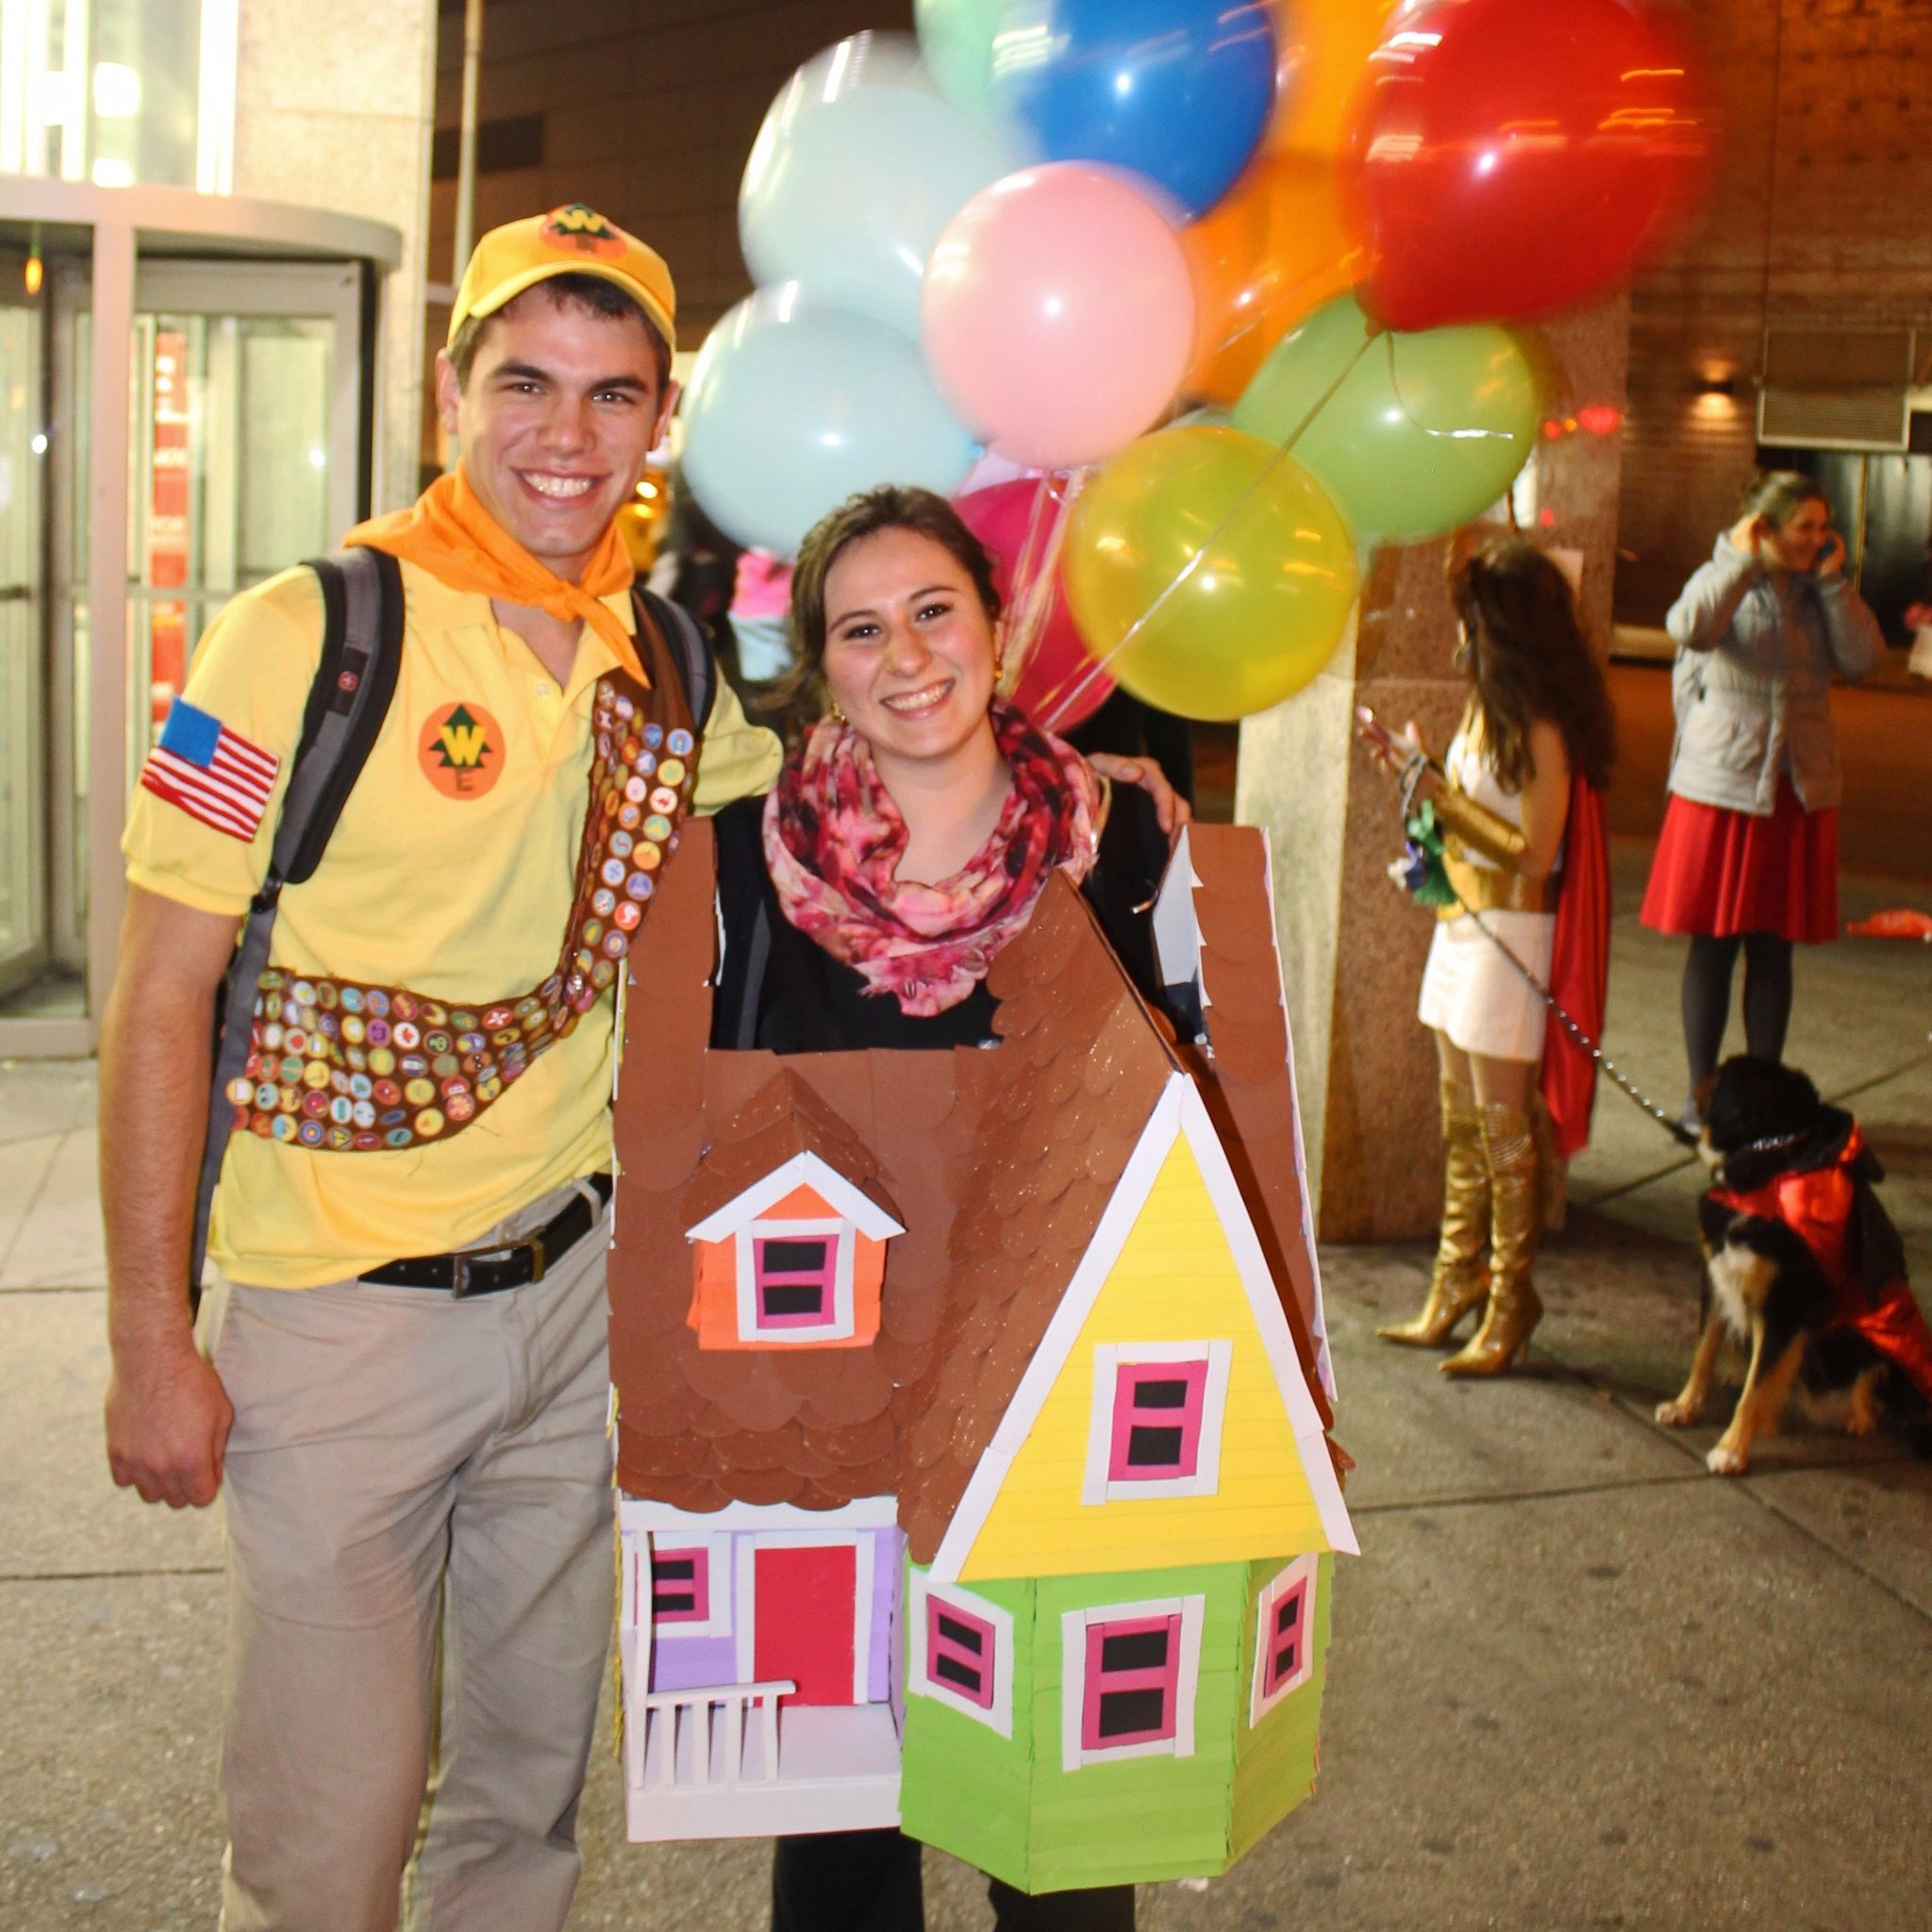 10 stylish homemade couple halloween costume ideas cheap diy couples halloween costumes popsugar smart living 17